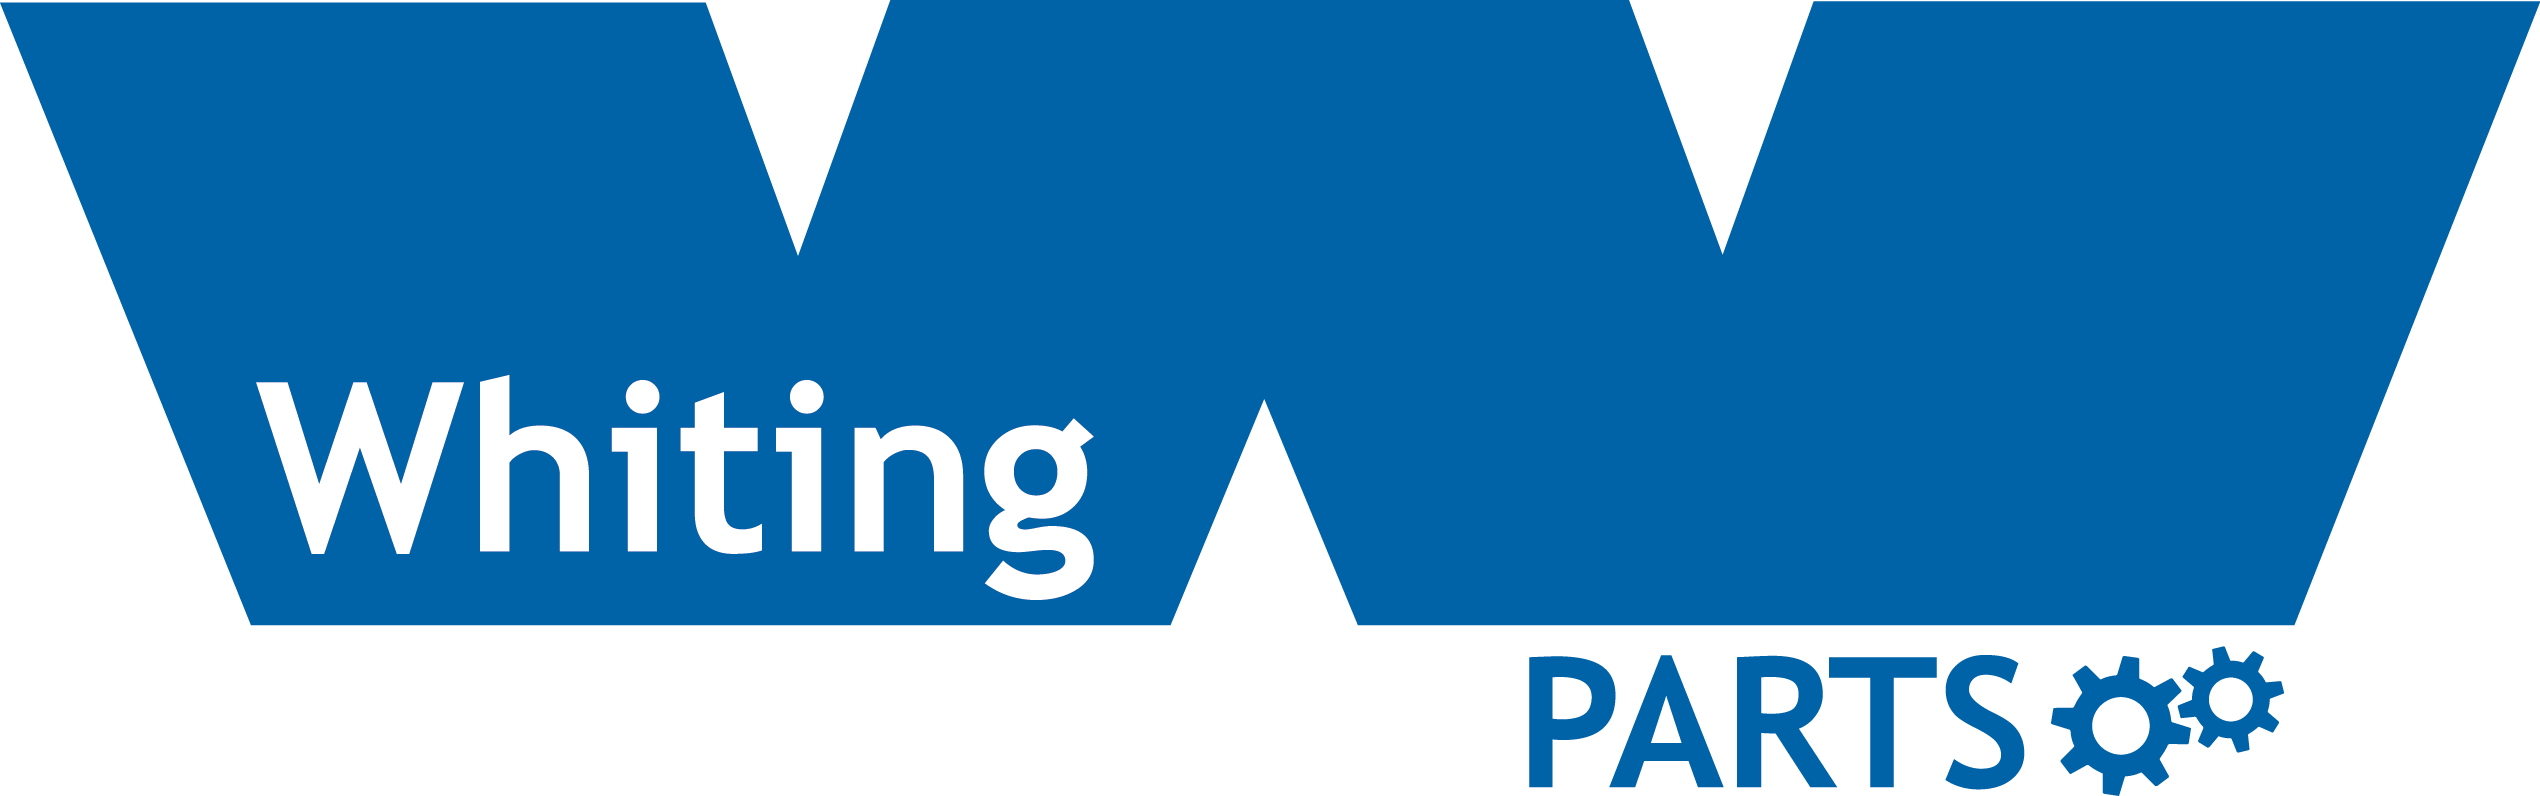 Whiting Parts Logo